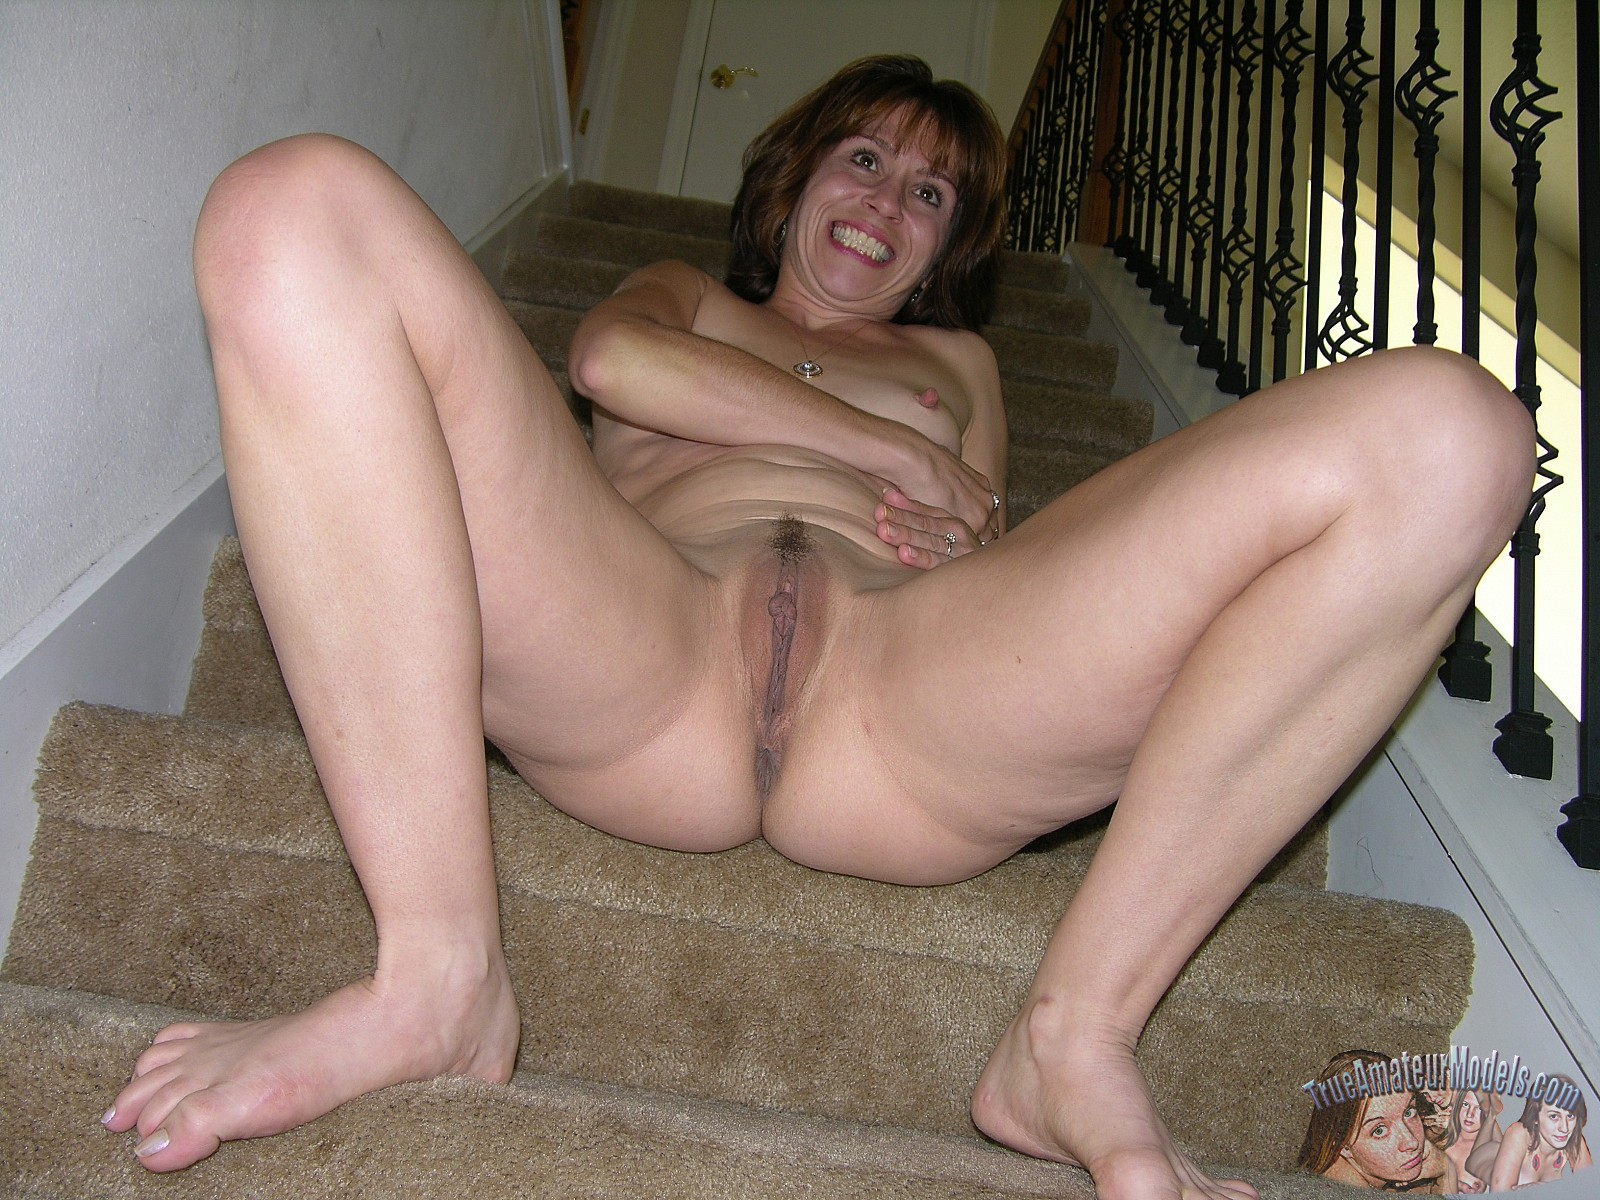 Mature amateur women videos-6180